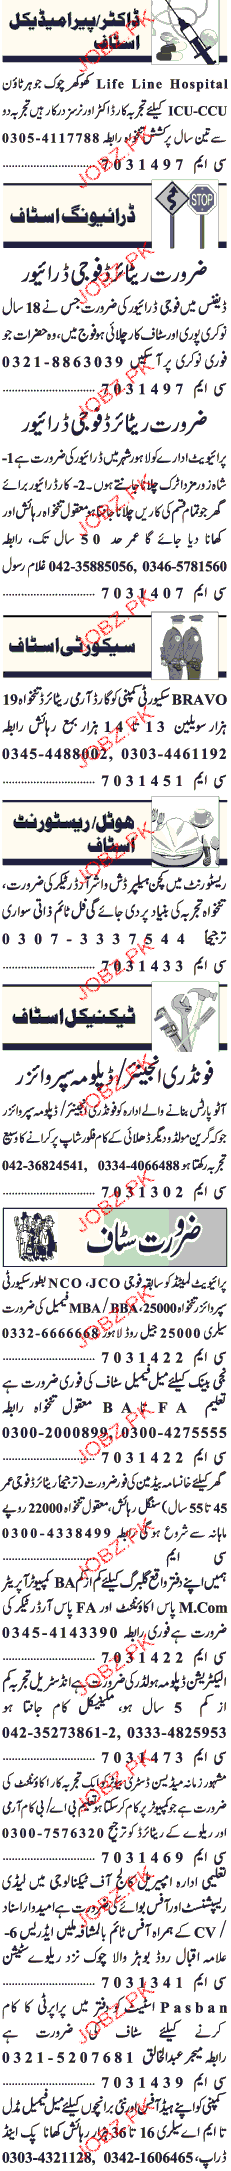 Doctors, ICU Nurses, Army Retired Drivers Job Opportunity